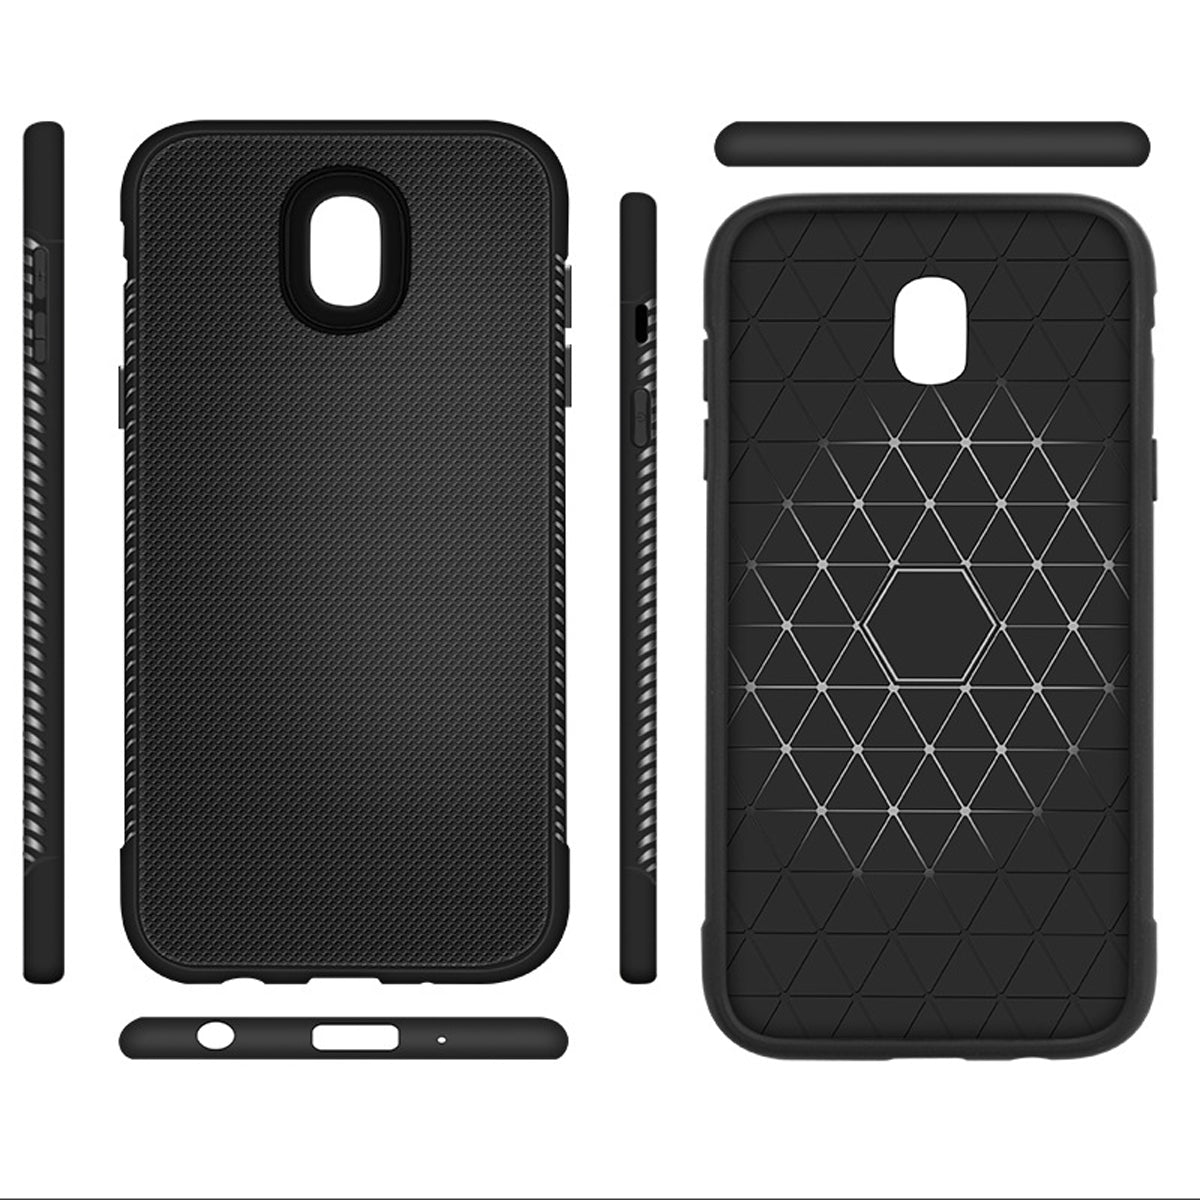 Shock Proof Anti Skid 360° Armor Back Case Cover for Samsung Galaxy J7 Pro - Black - Mobizang